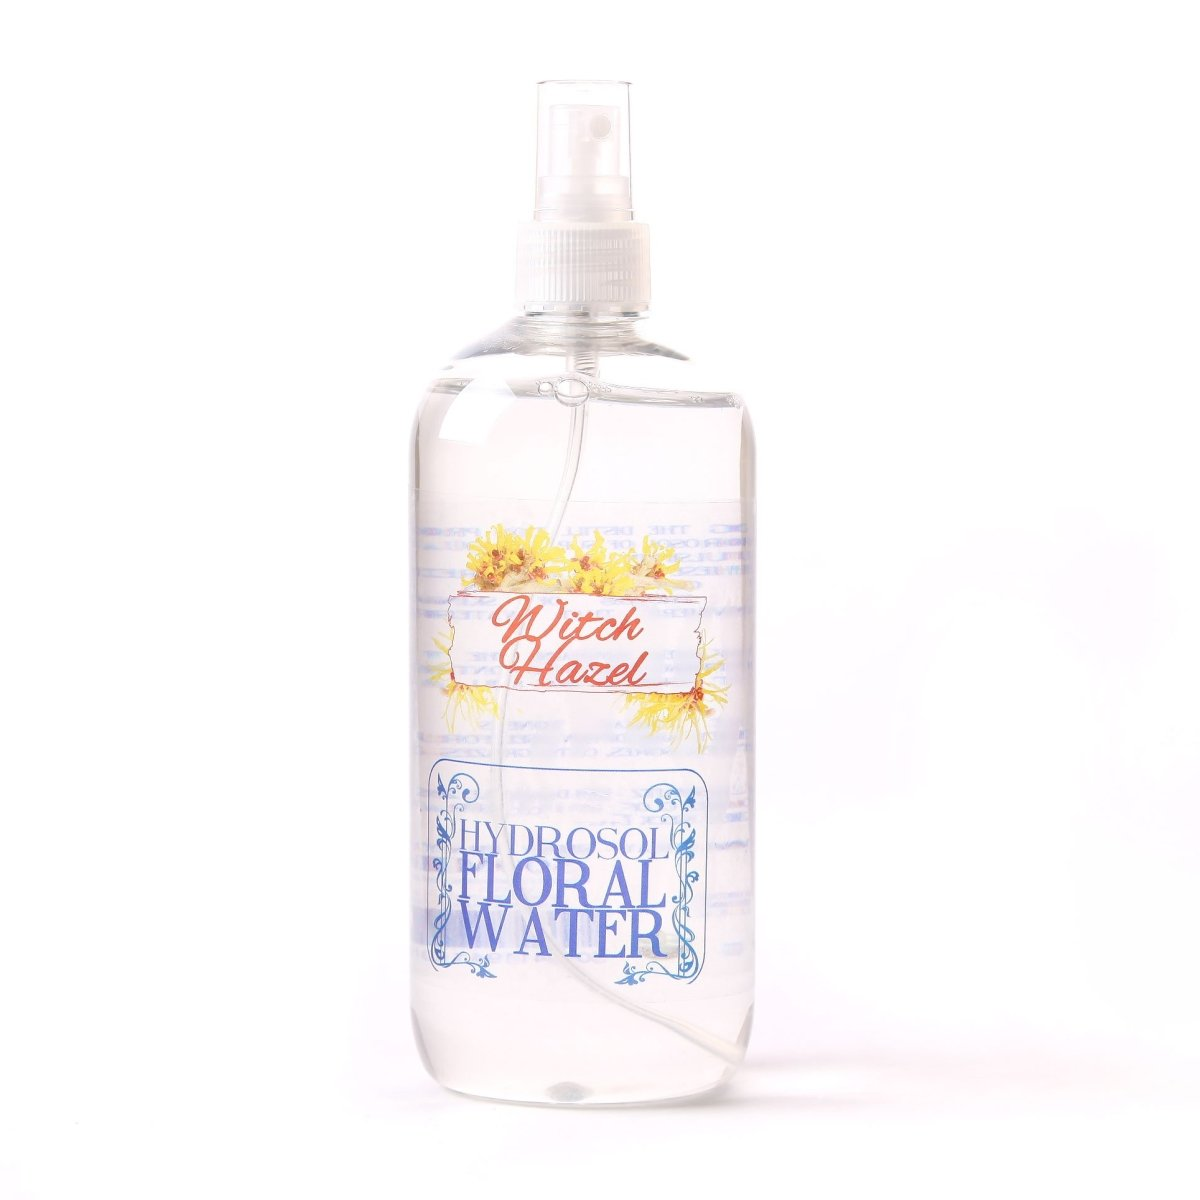 Witch Hazel Hydrosol Floral Water - Mystic Moments UK